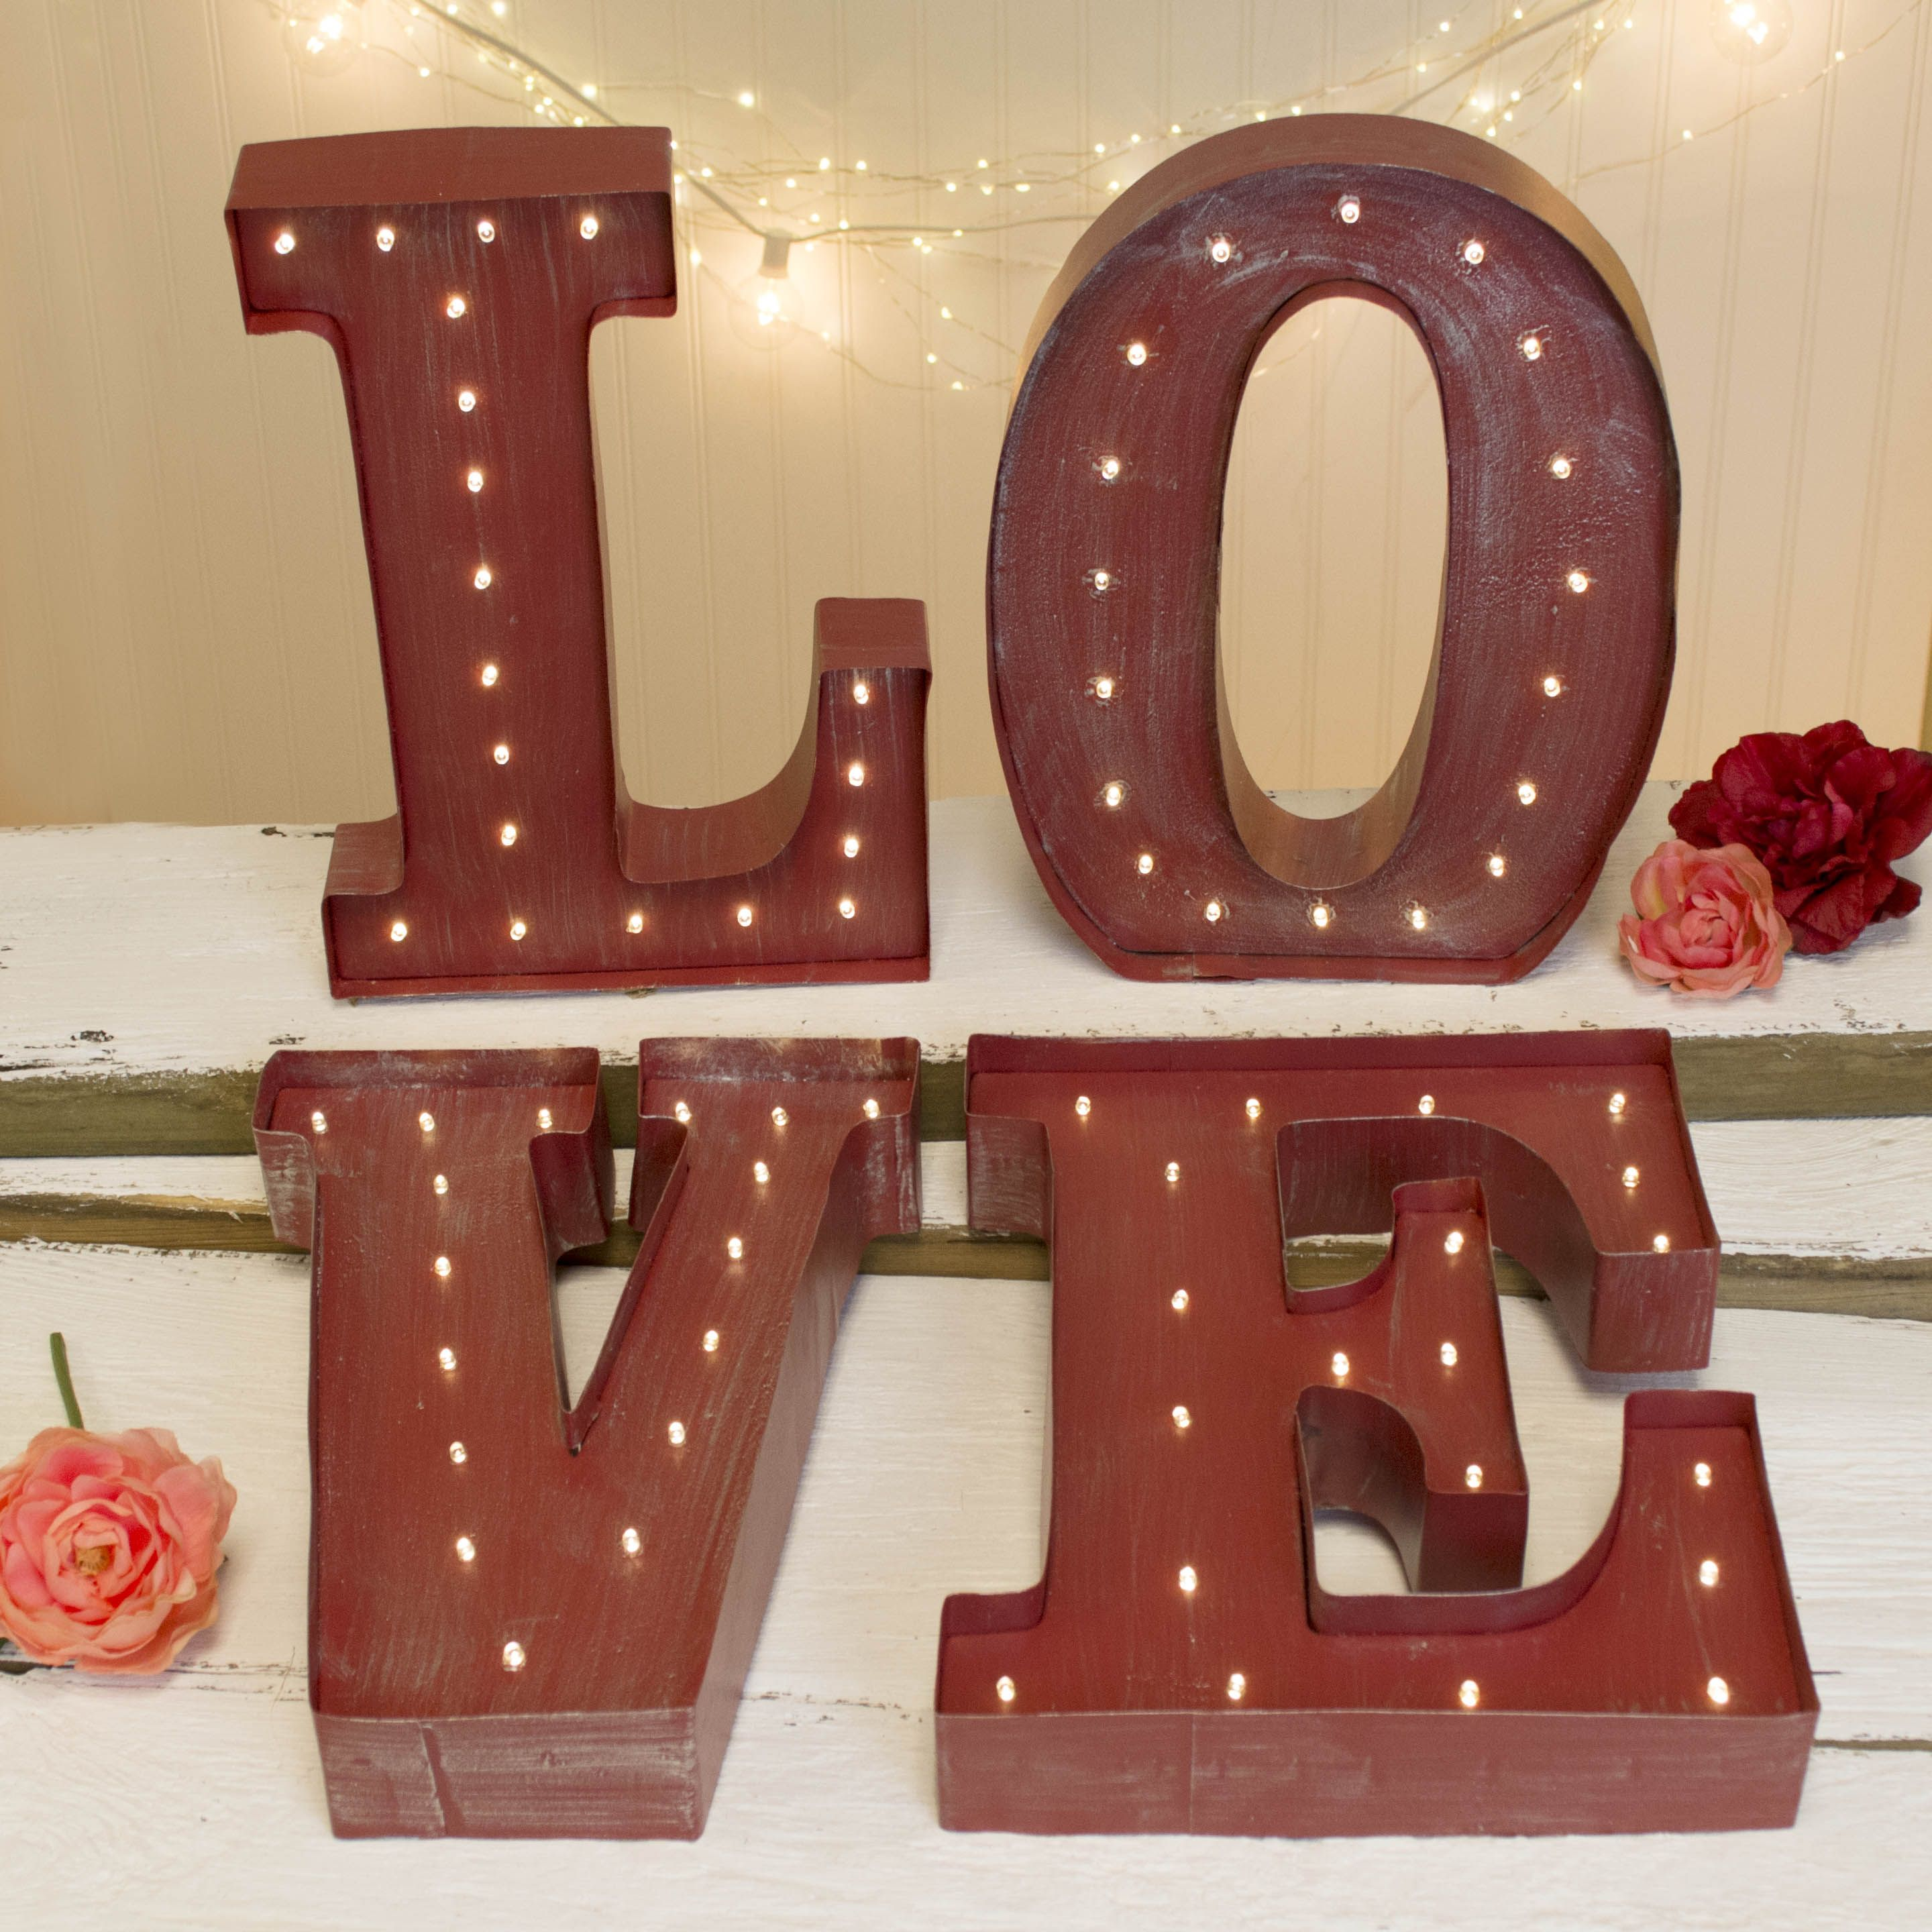 Industrial Style Light Up Letters: Buy Marquee LED Light, Metal Love Sign, Industrial Letters